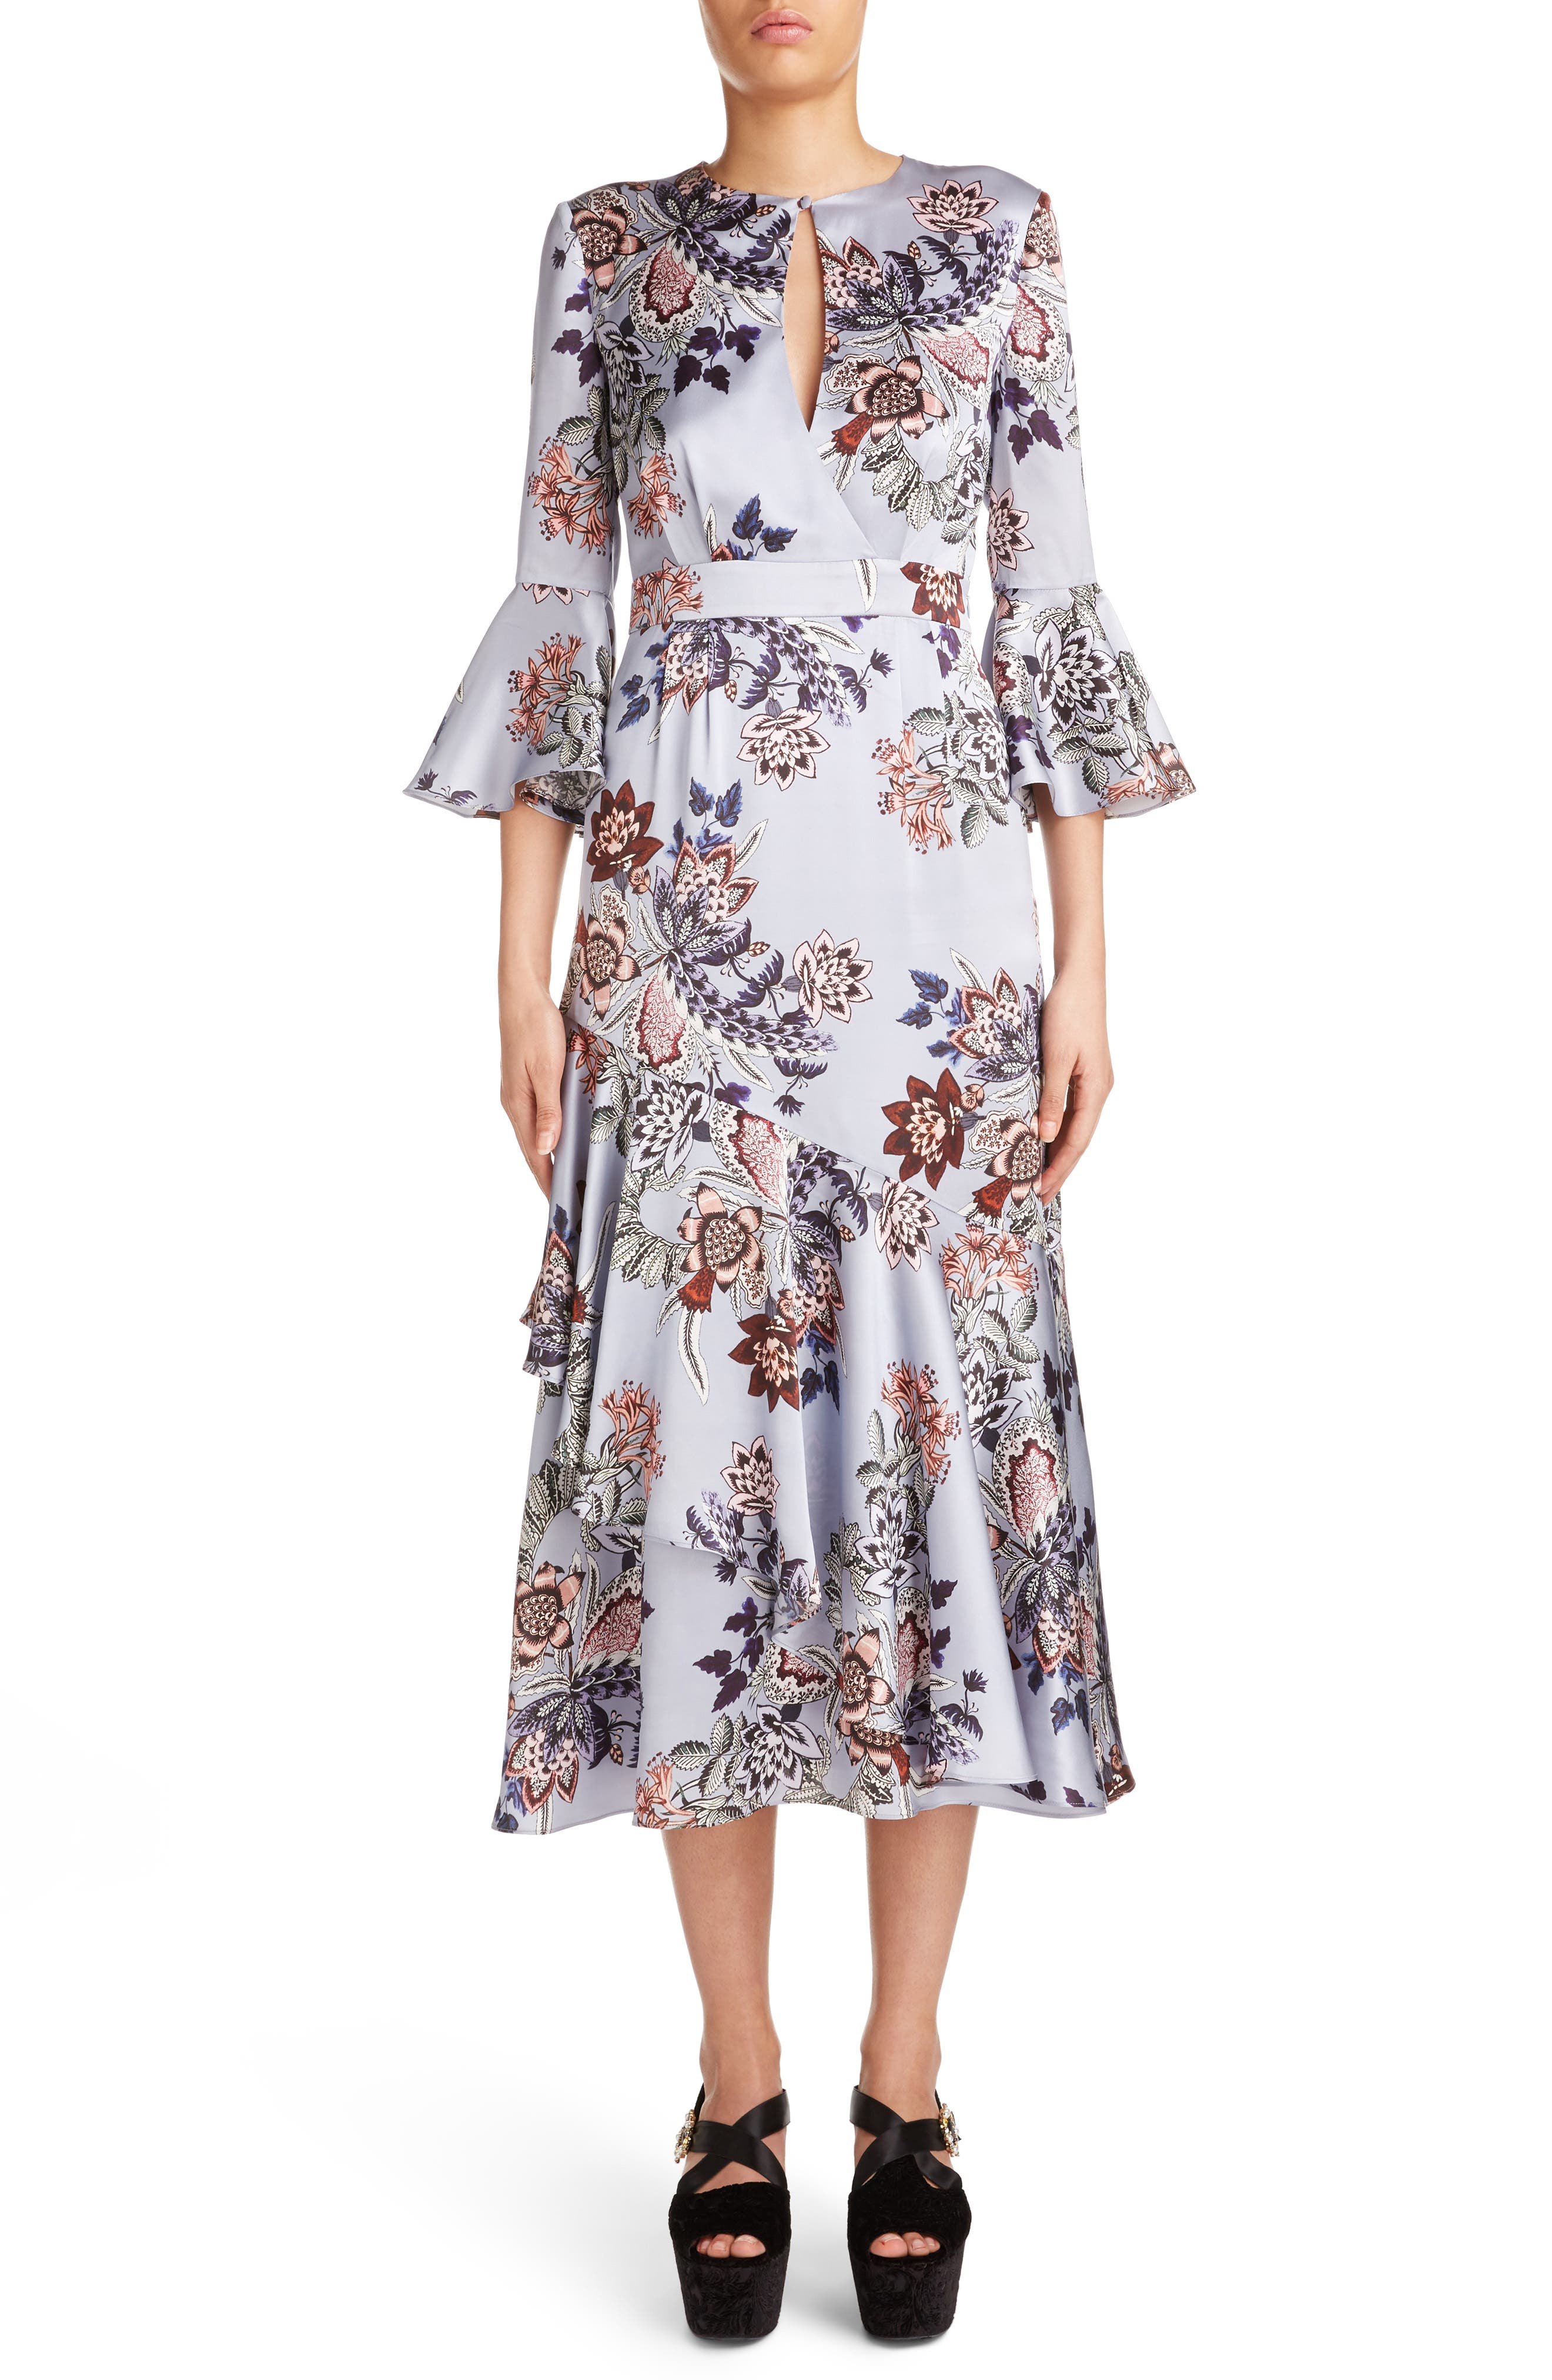 Erdem Floral Print Silk Satin Dress